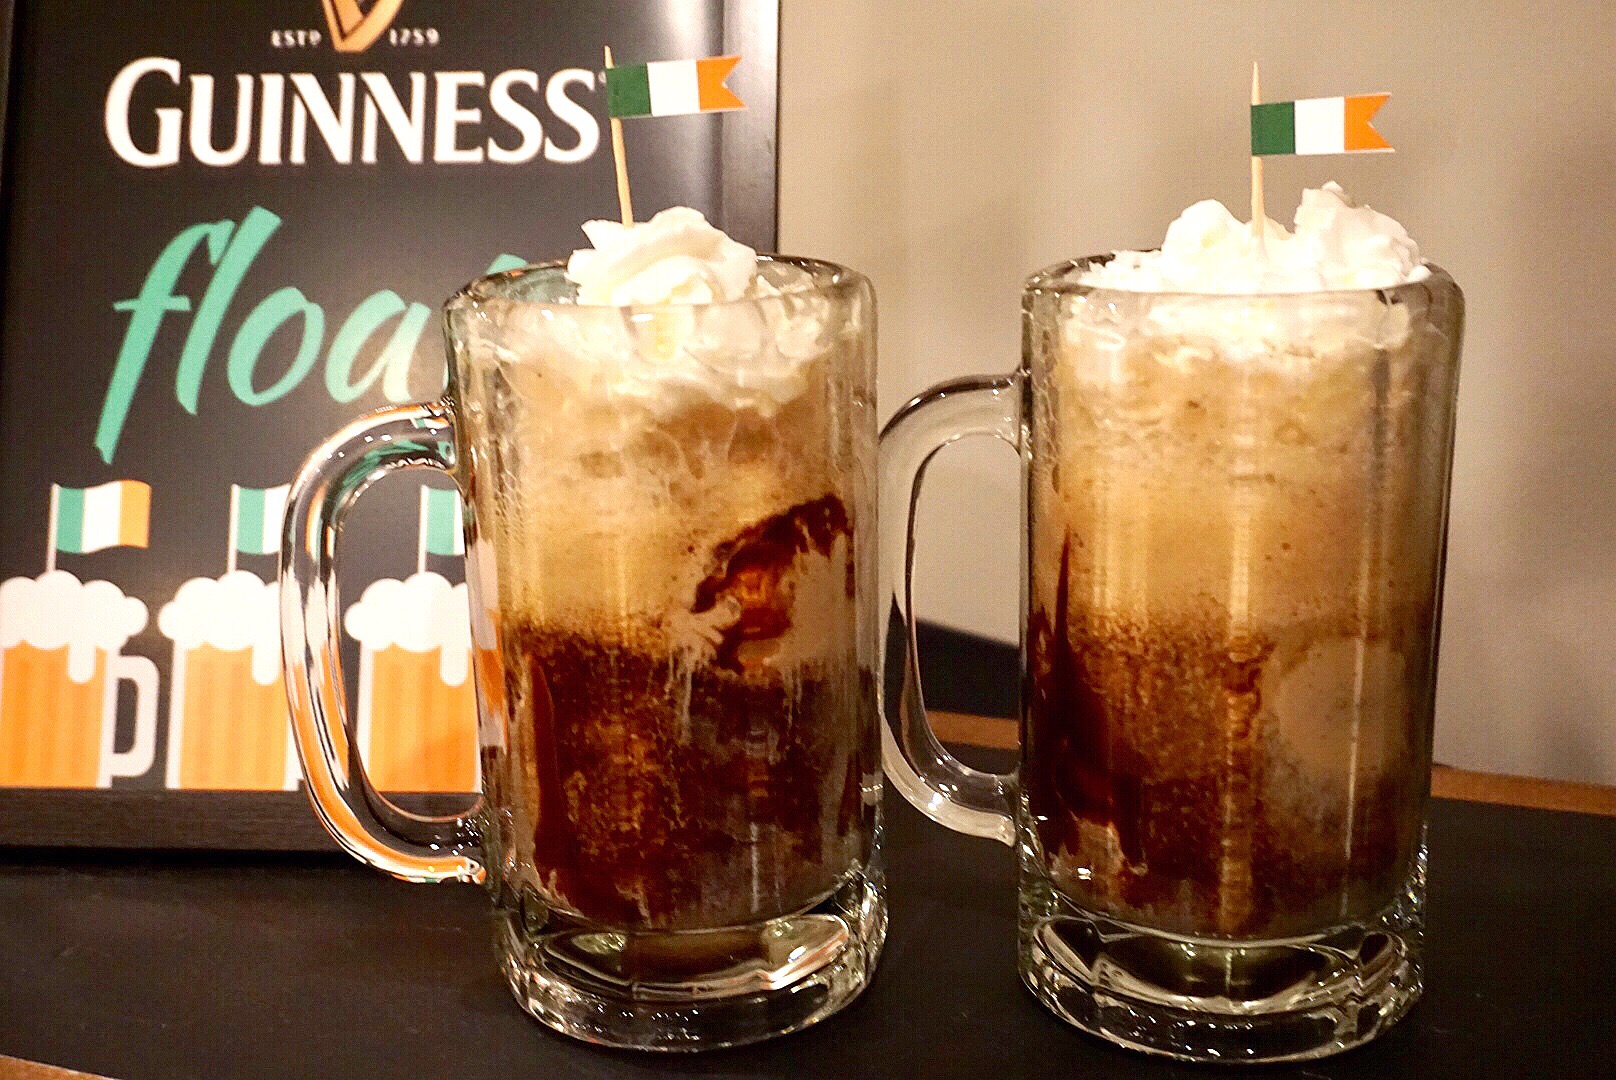 Guinness floats are a festive St. Patrick's Day drink. Add an Irish flag for a little extra fun!